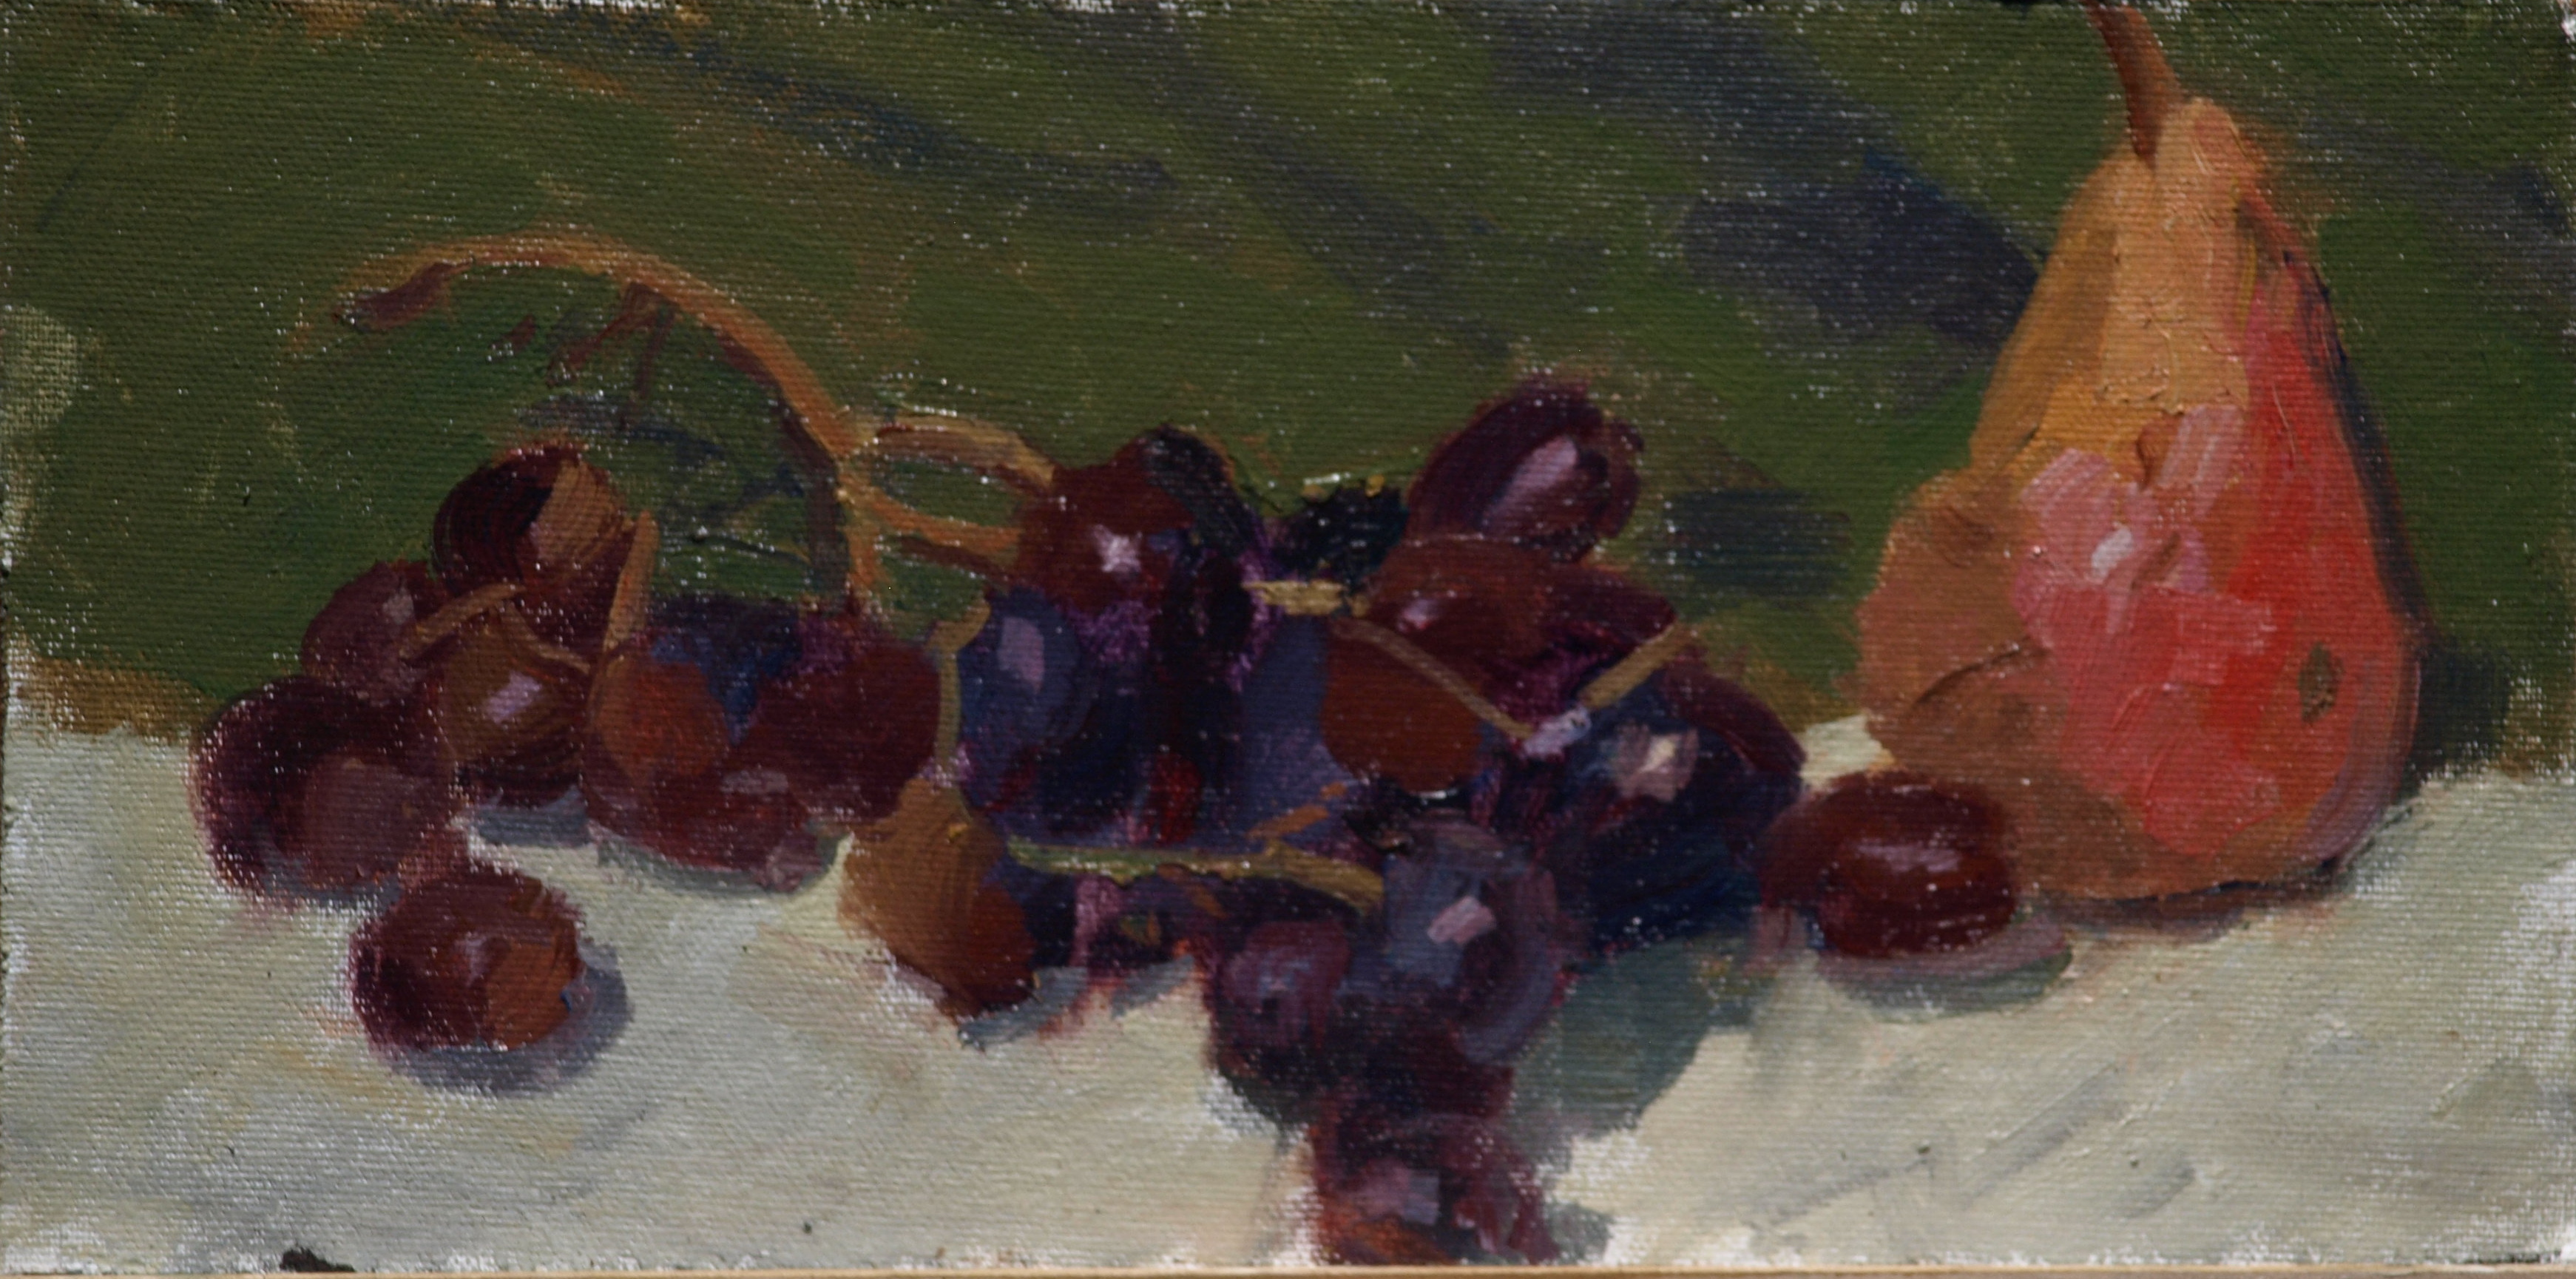 Pear and Grapes, Oil on Canvas on Panel, 8 x 12 Inches, by Susan Grisell, $150